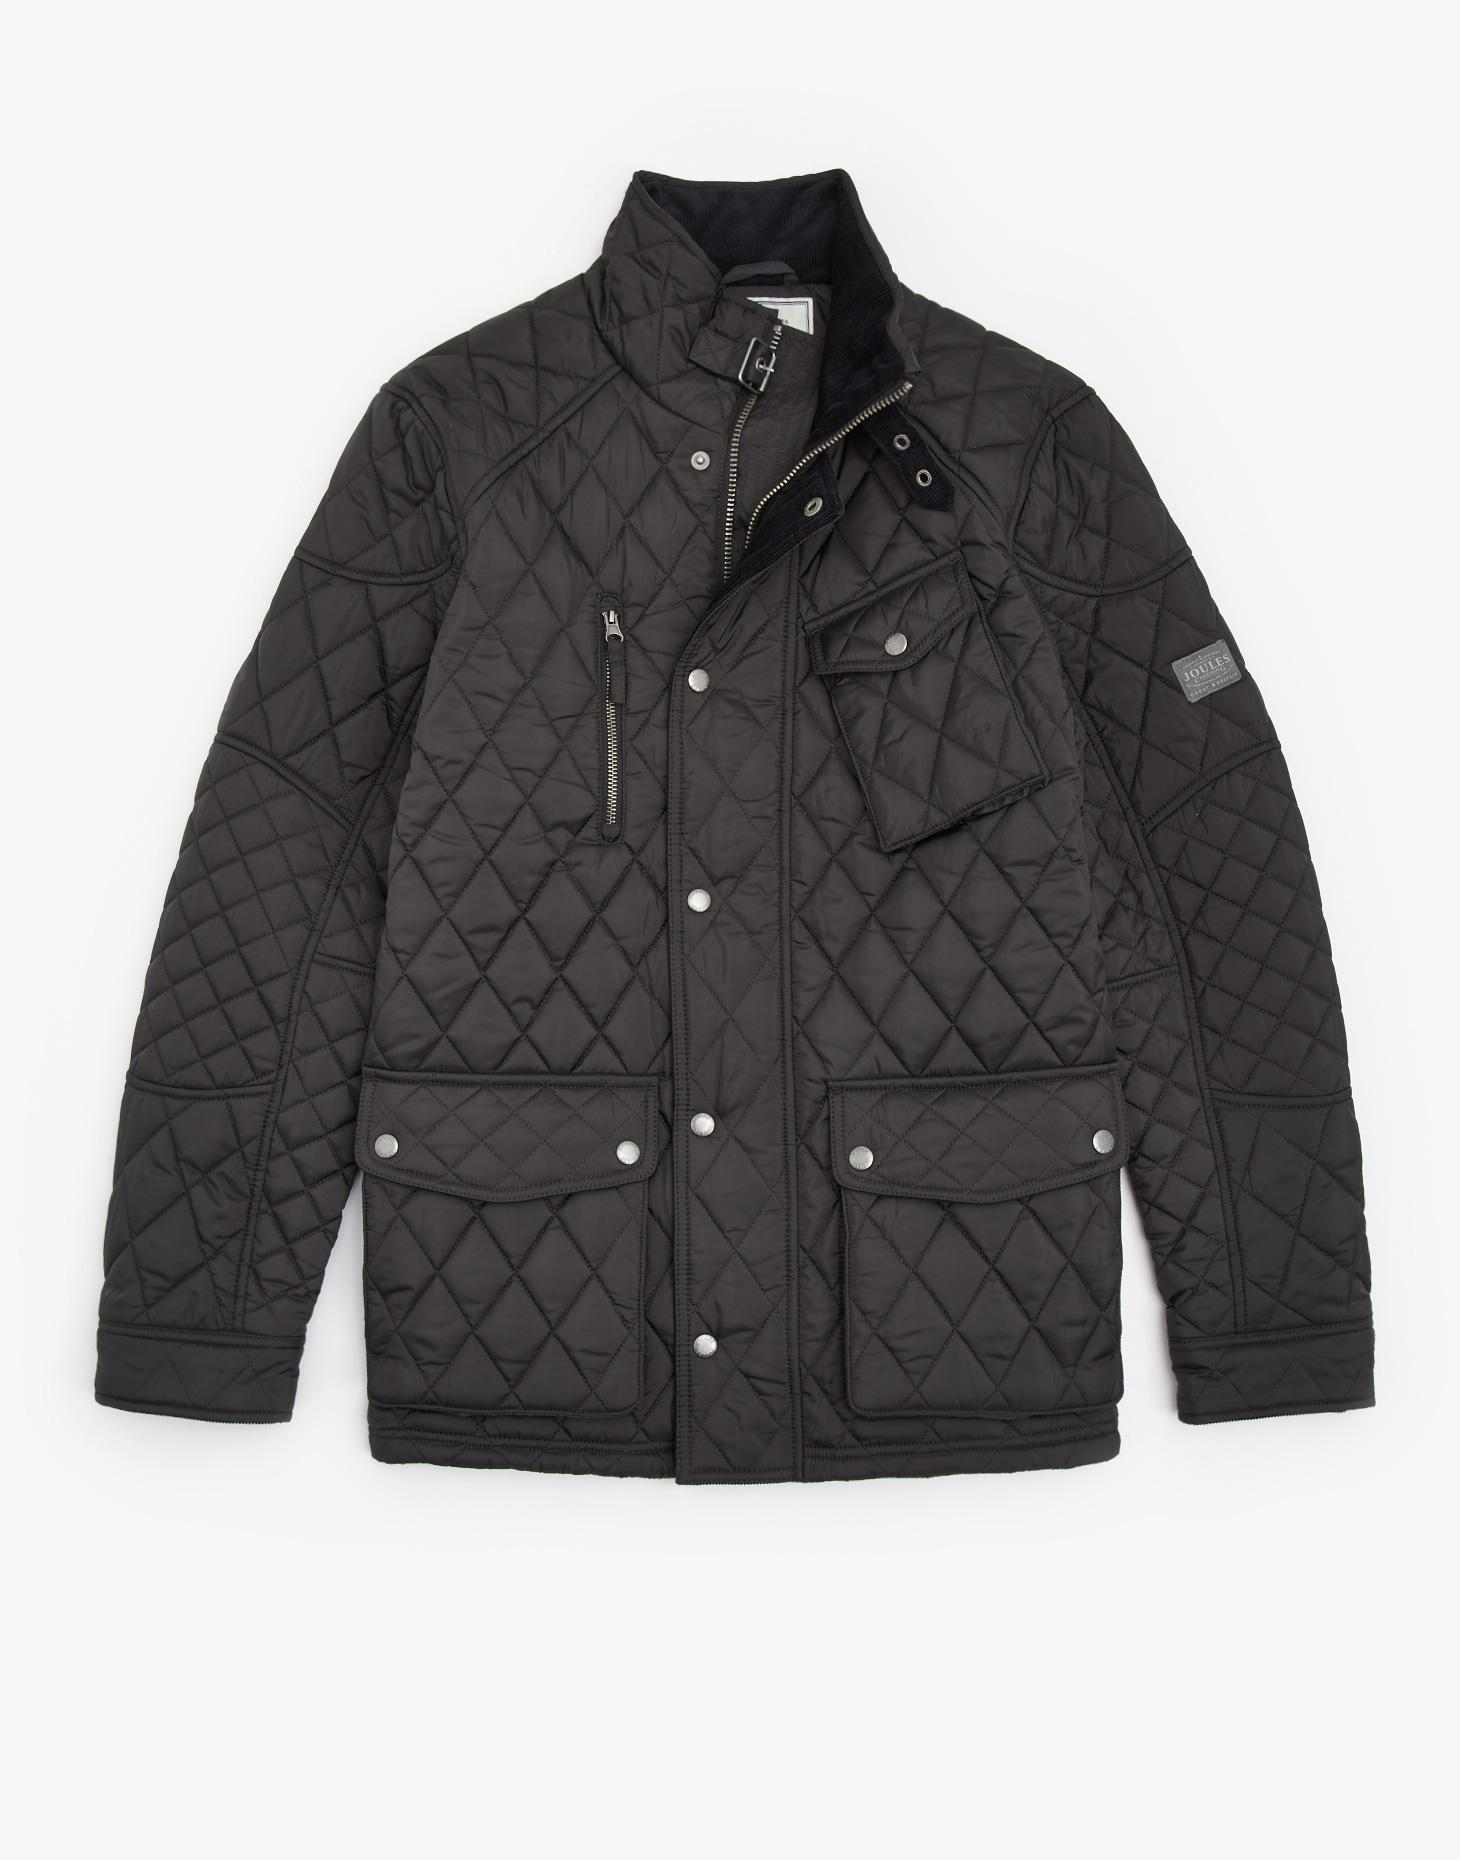 Joules Coal STAFFORD Quilted Jacket